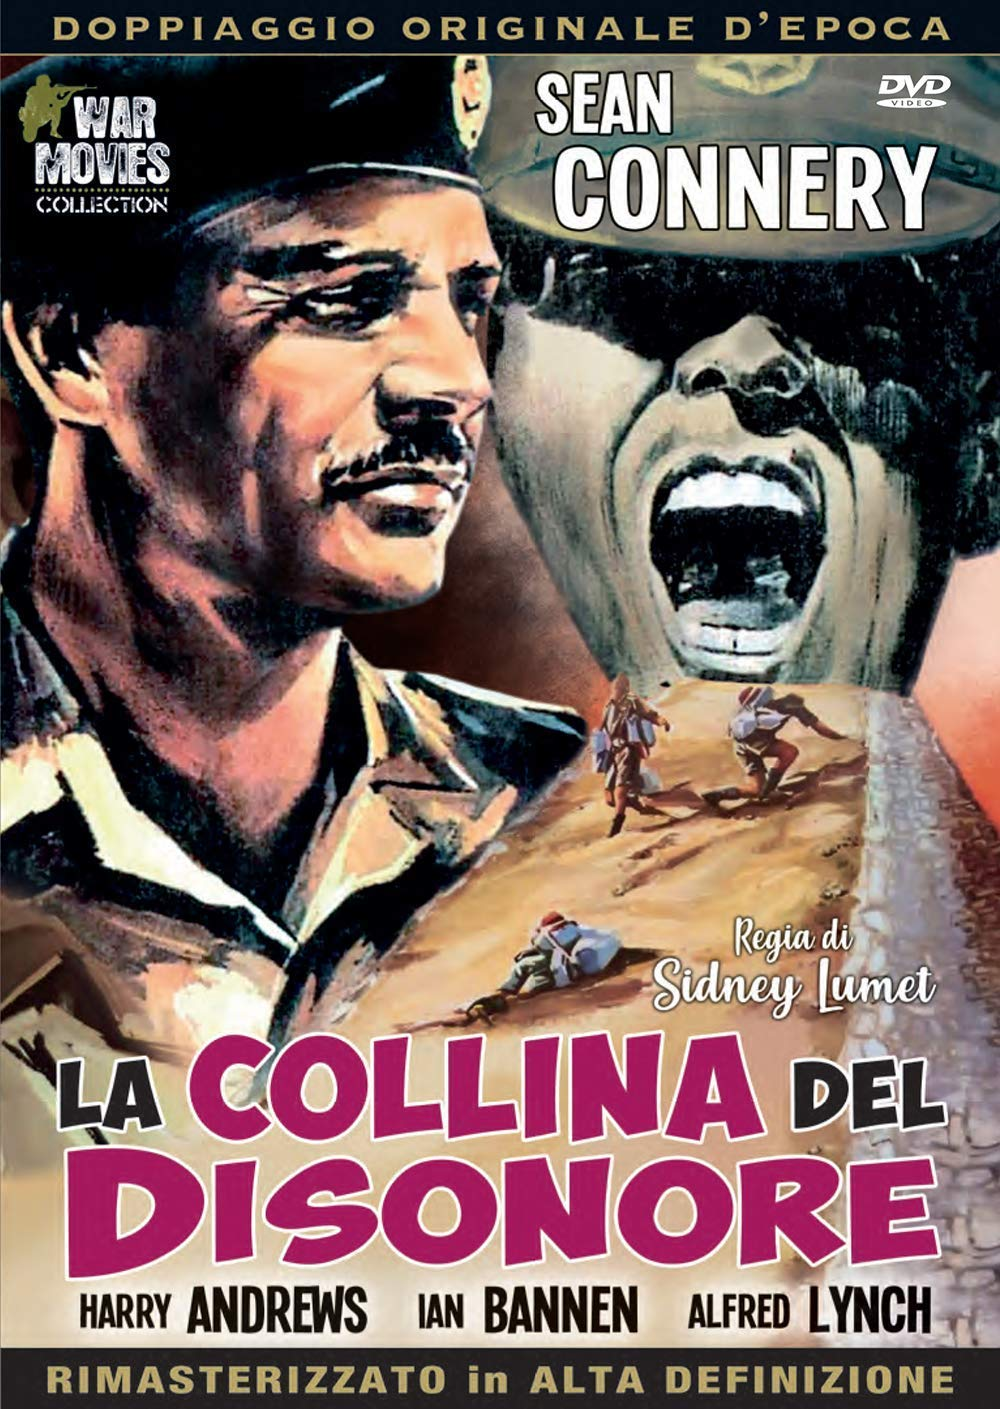 La Collina Del Disonore 1956 Amazon It Connery Andrews Bannen Connery Andrews Bannen Film E Tv